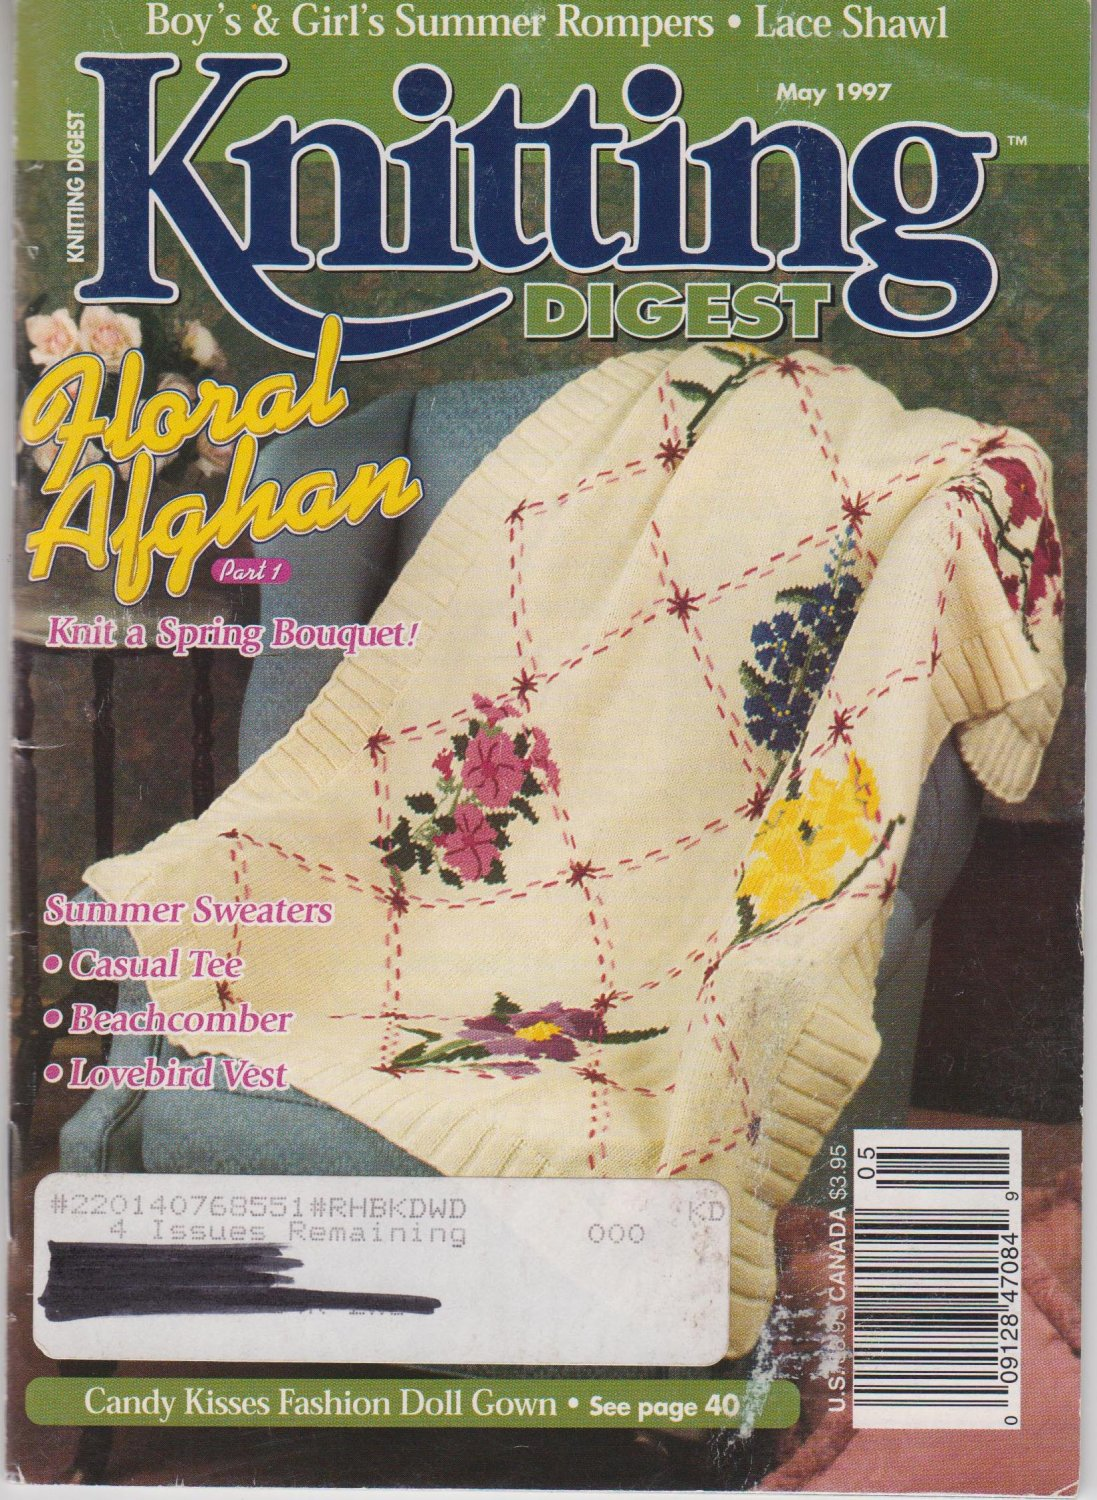 Knitting Digest Magazine May 1997 Issue Volume 19 Number 3